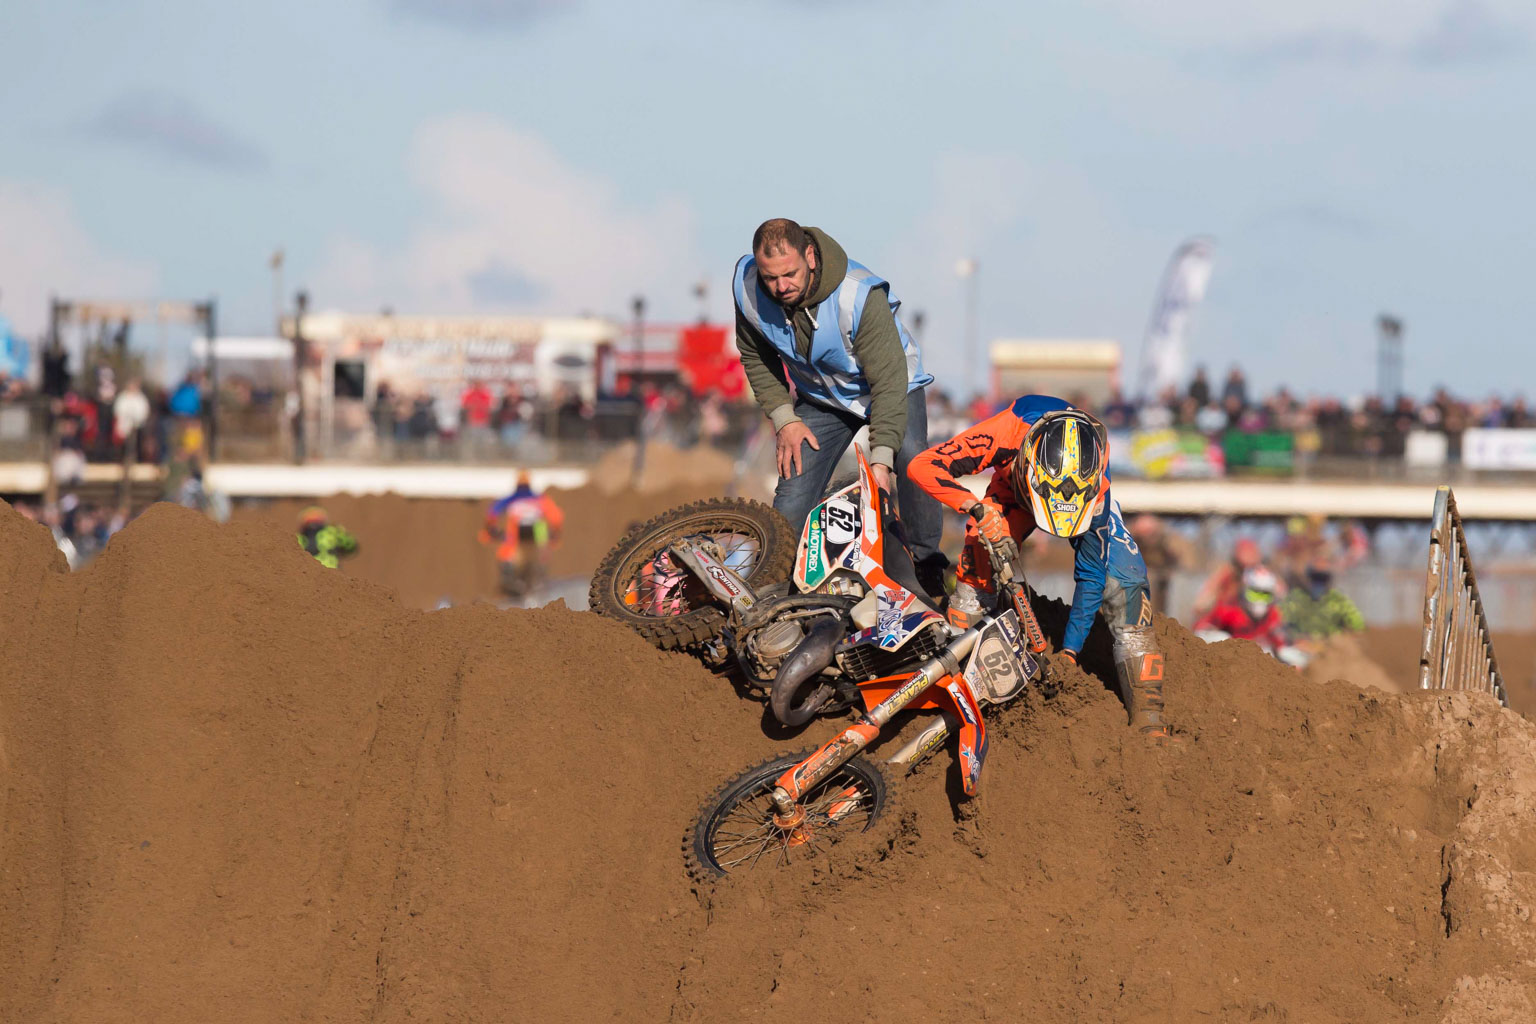 Casey Lambley (KTM) goes down